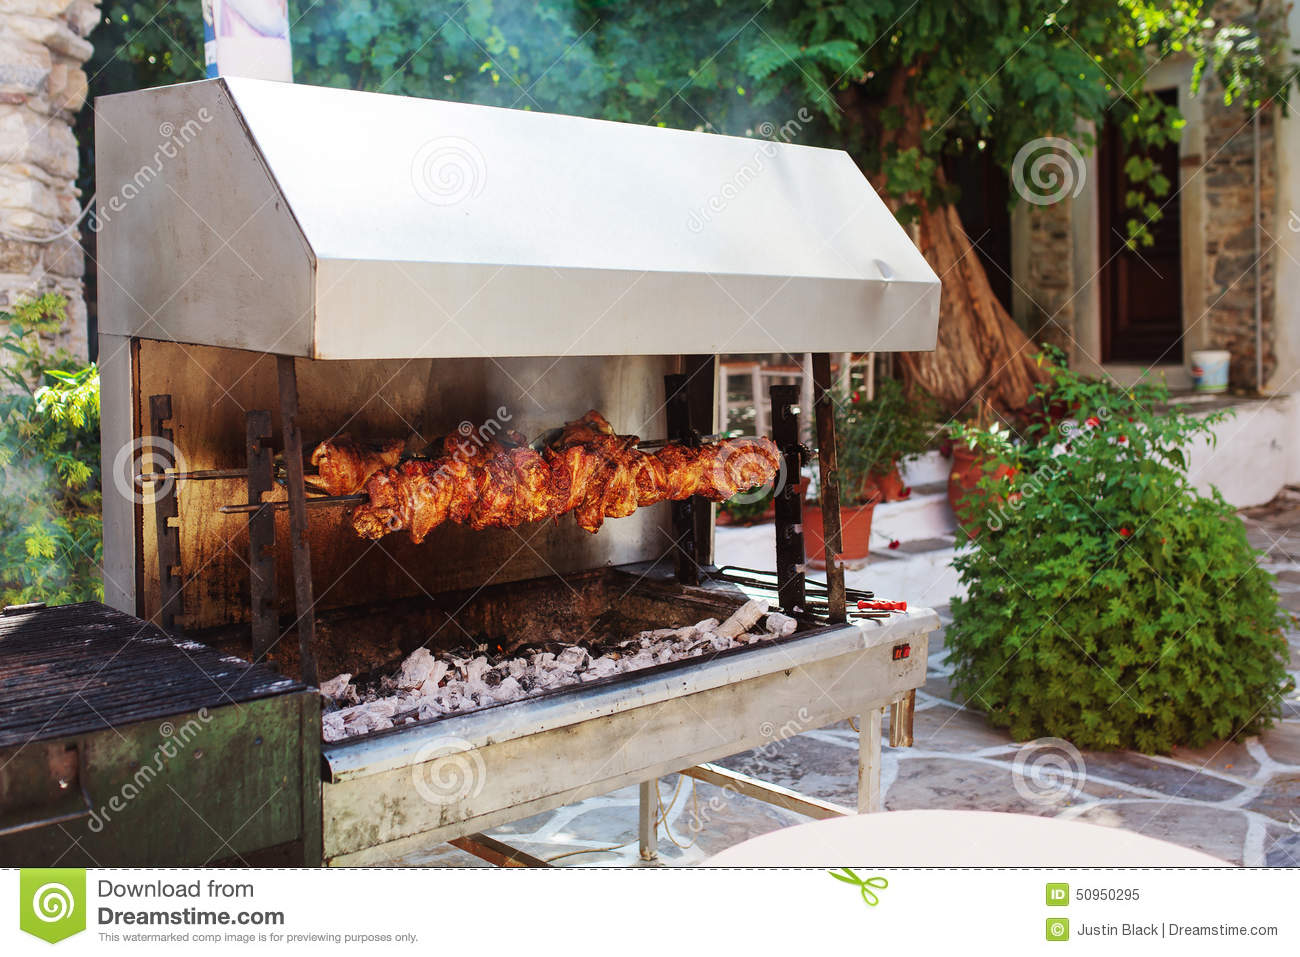 Outdoor Grill With Meat In Naxos Island, Greece.